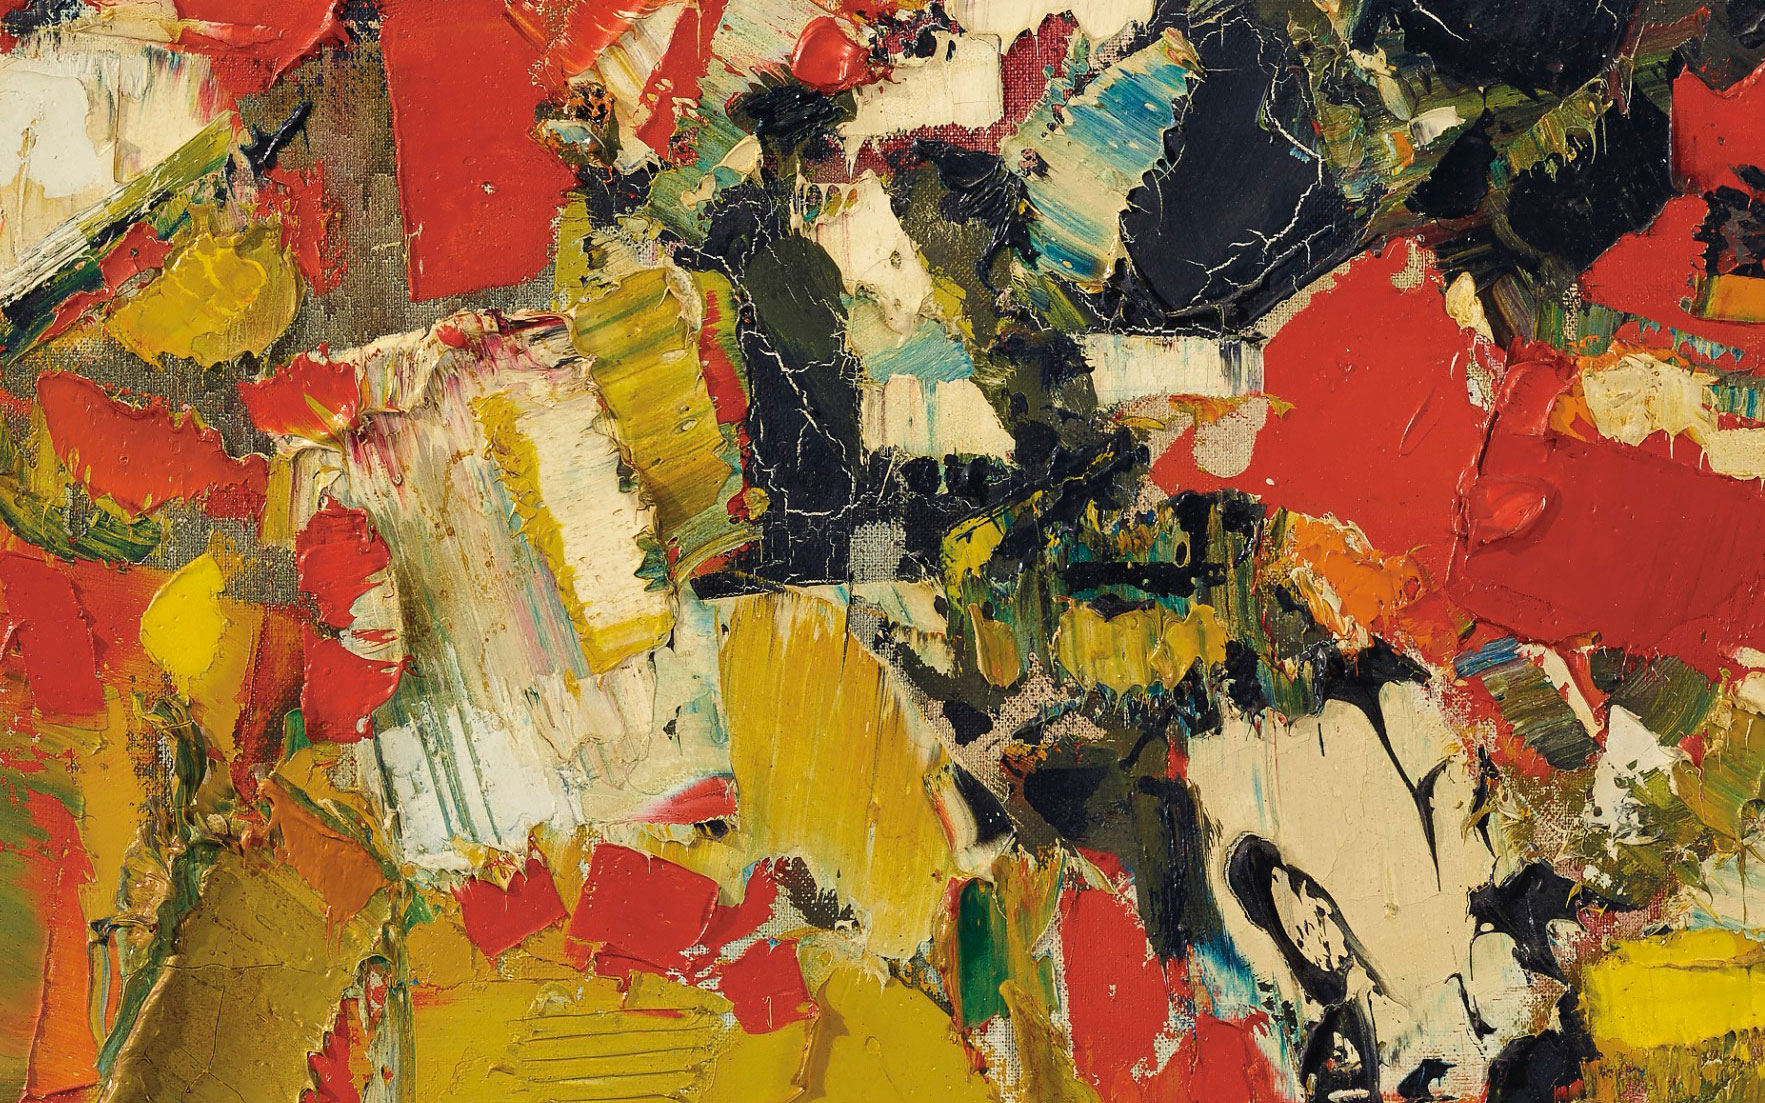 (Detail) Syed Haider Raza (1922-2016), Plein Soleil, 1961. 36¼ x 28⅞  in (92.1 x 73.3  cm). Sold for $187,500 on 20 March 2019 at Christie's in New York